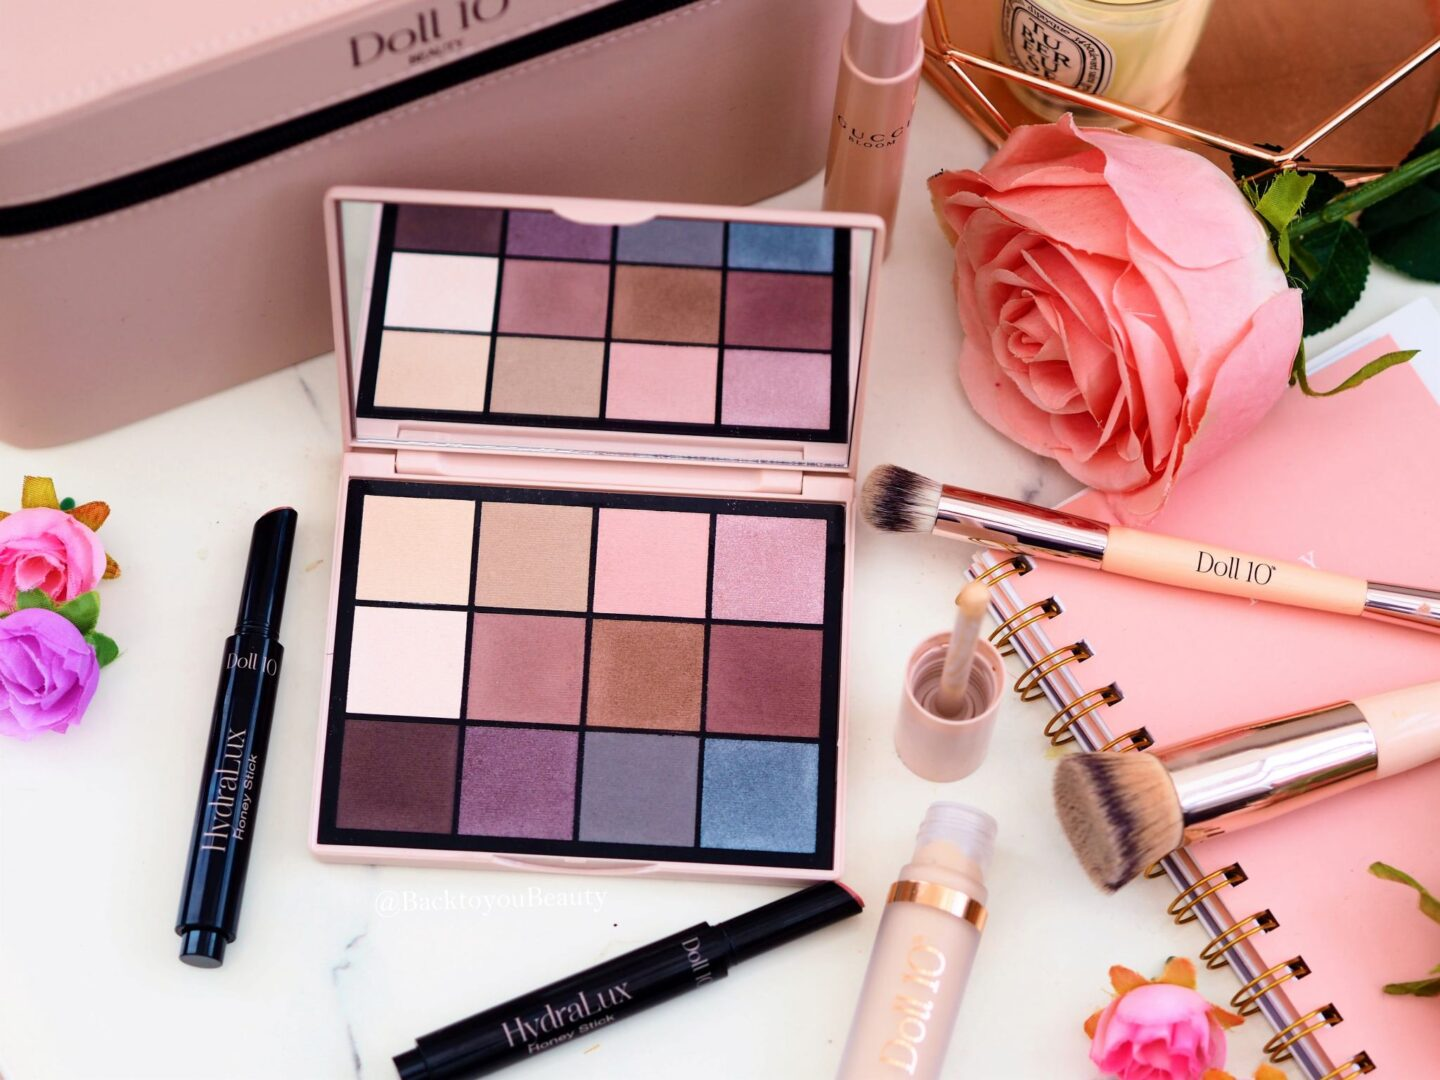 Doll 10 Pro Palette 3 New Release